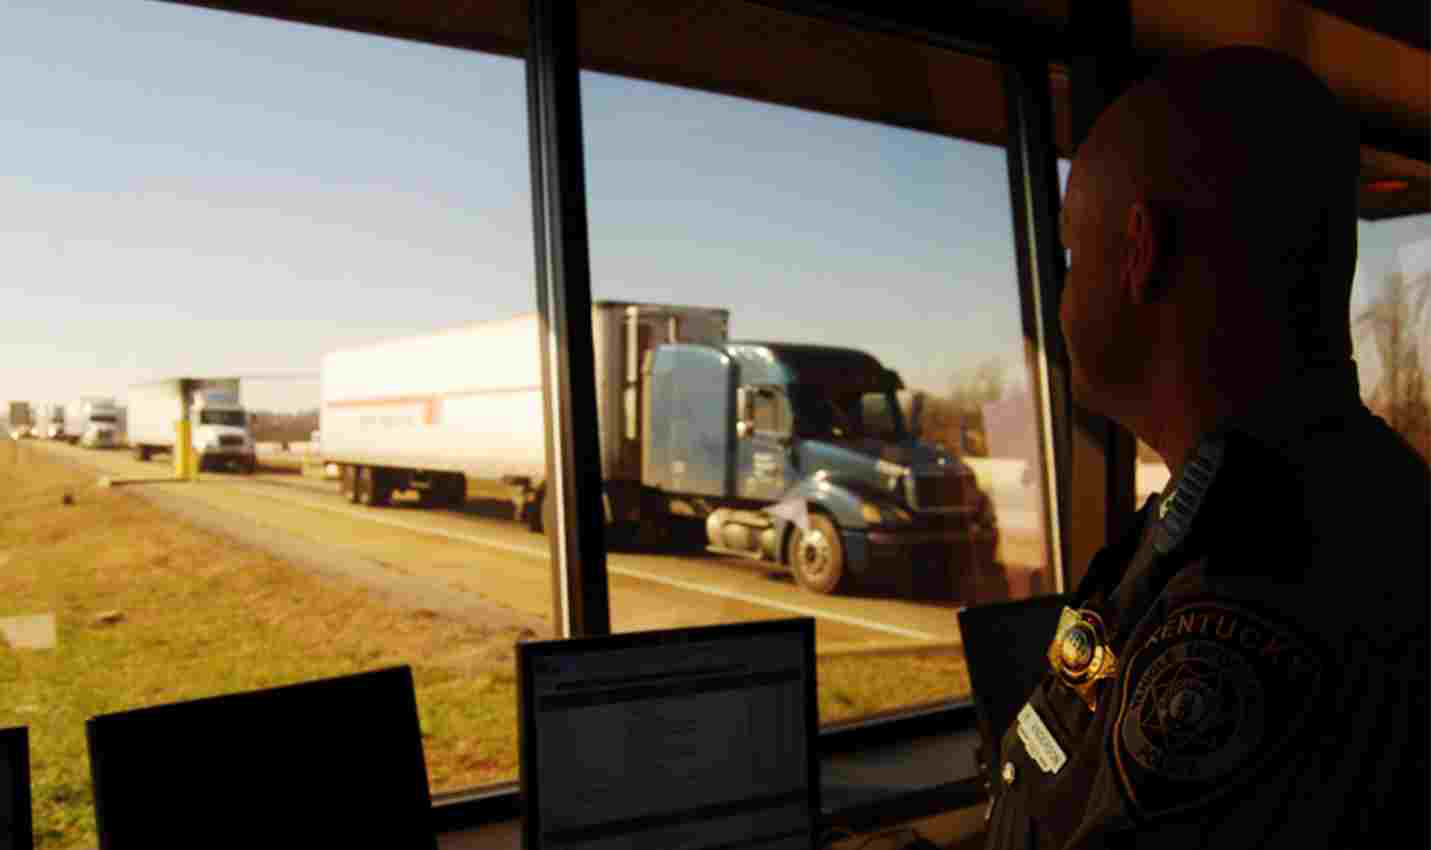 Trucking's Future with Inspections on Computer